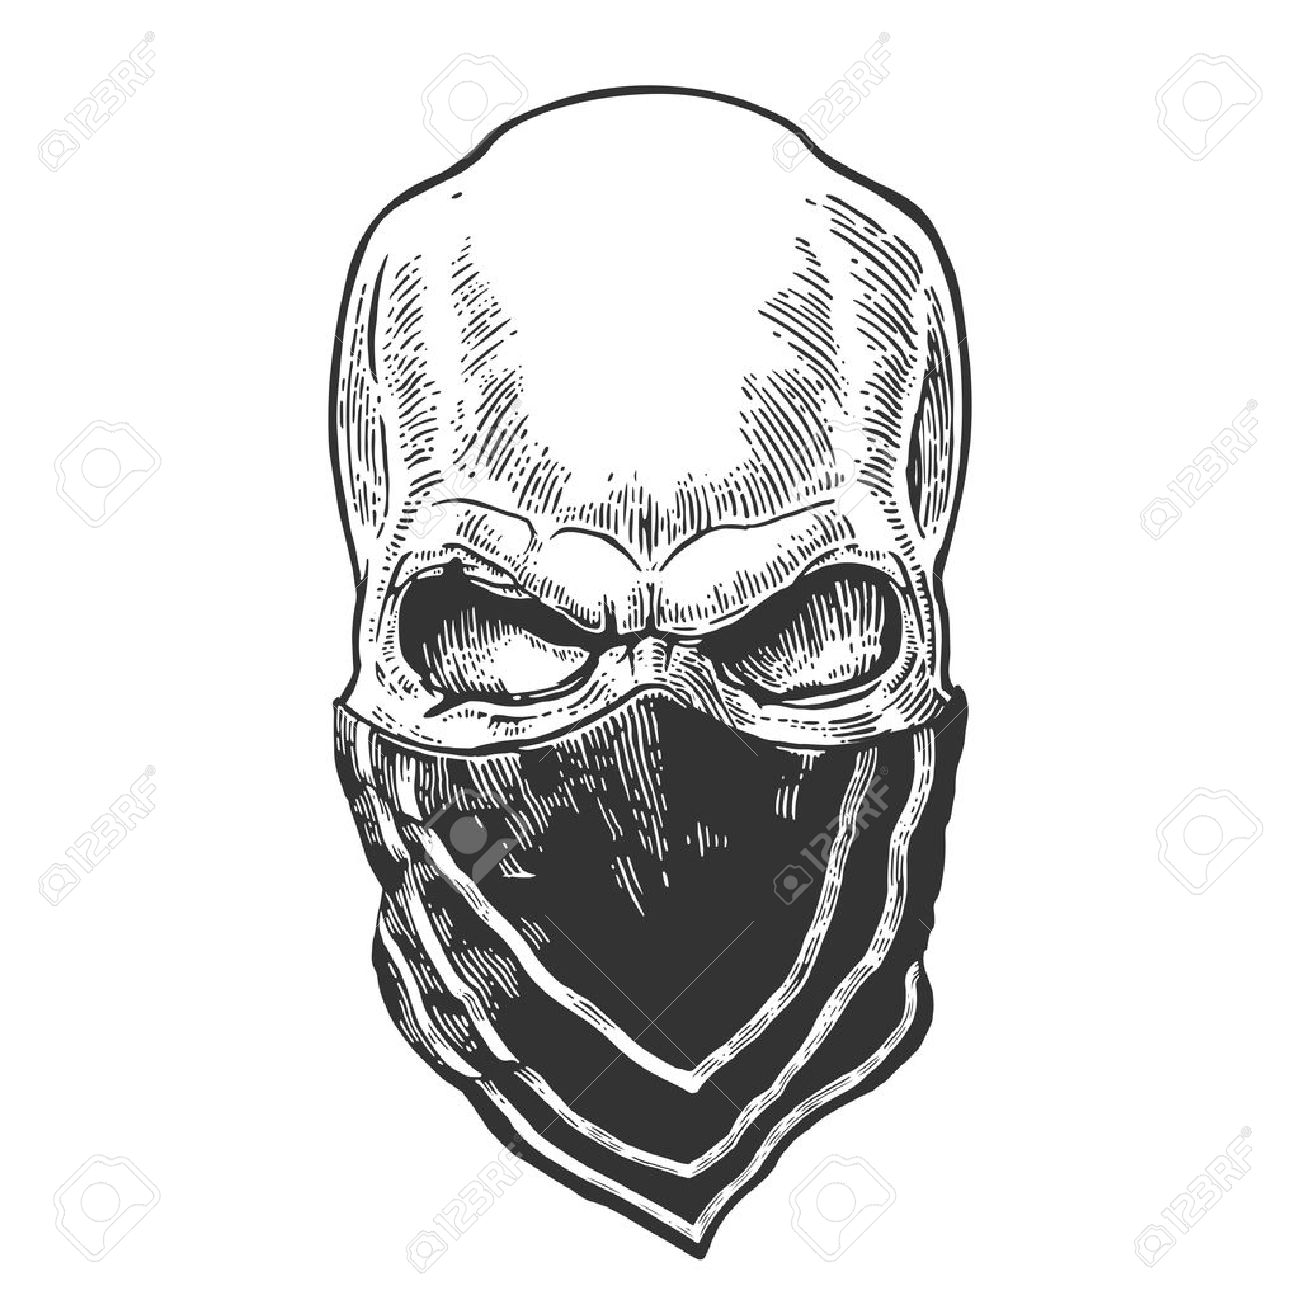 Skull with bandana. Black vintage vector illustration. For poster and tattoo biker club. Hand drawn design element isolated on white background - 56546482